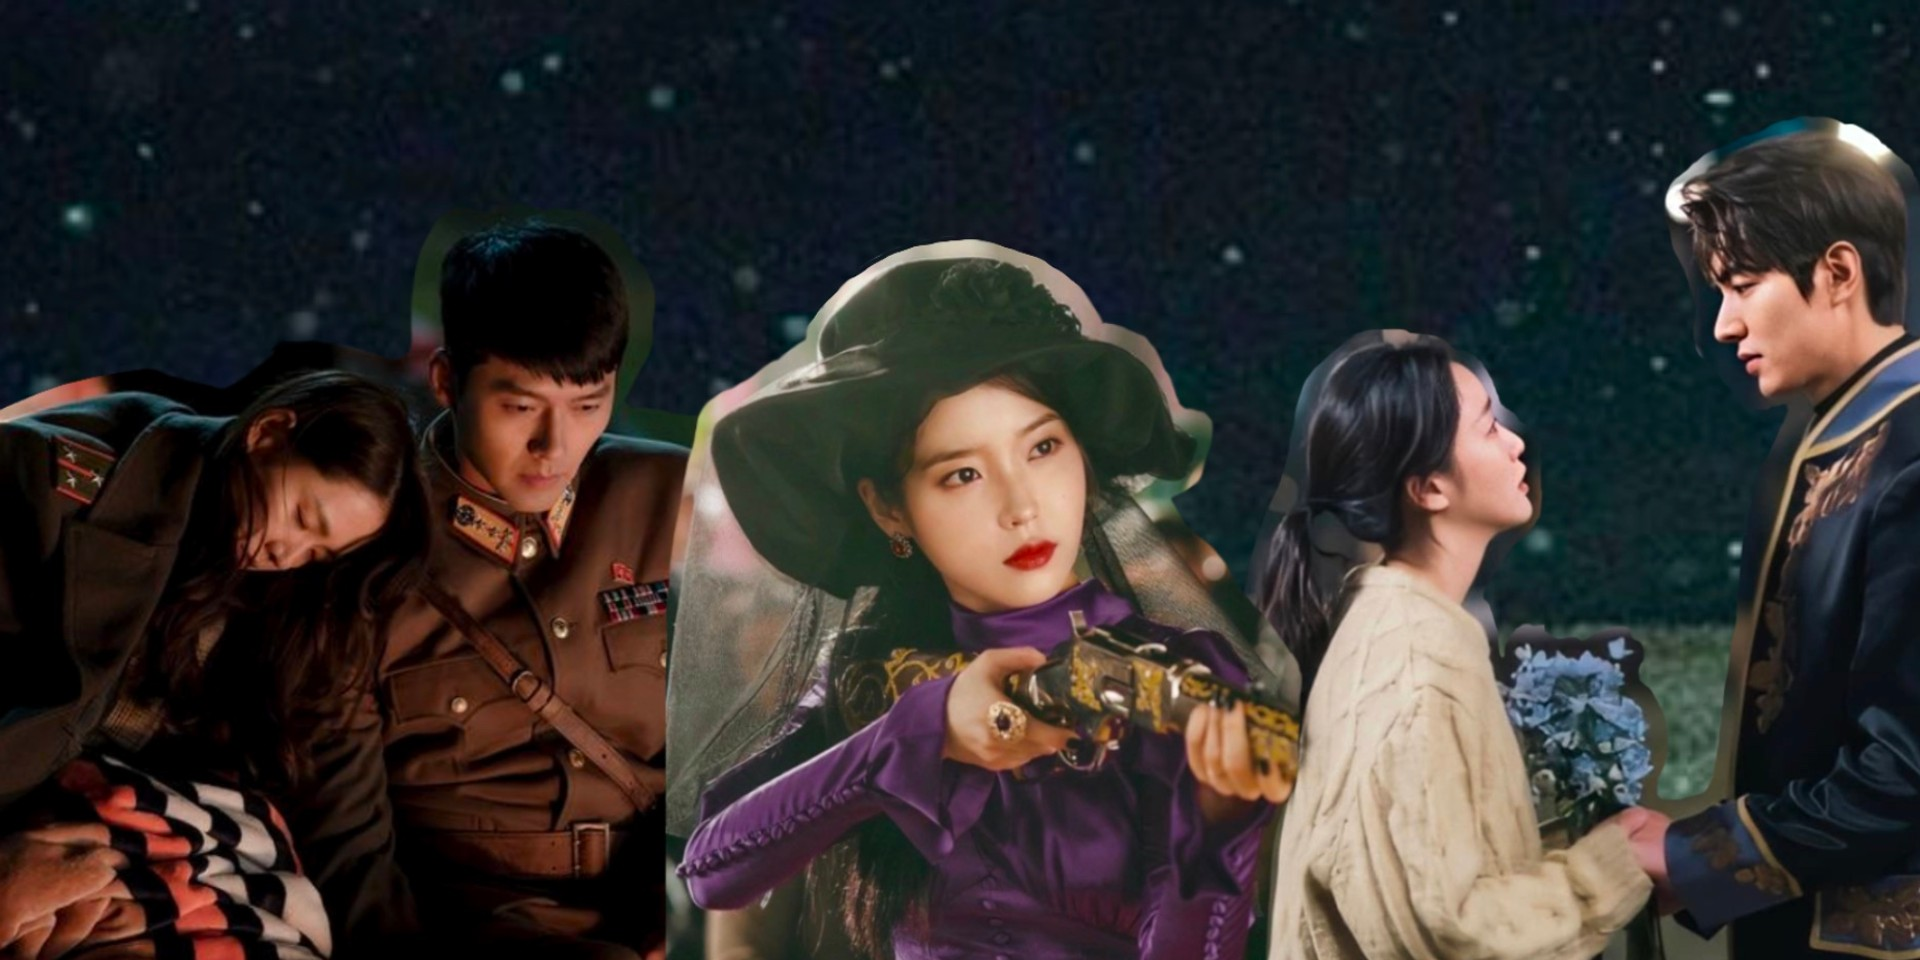 10 K-drama OST picks from Crash Landing on You, Hotel Del Luna, The King: Eternal Monarch, and more